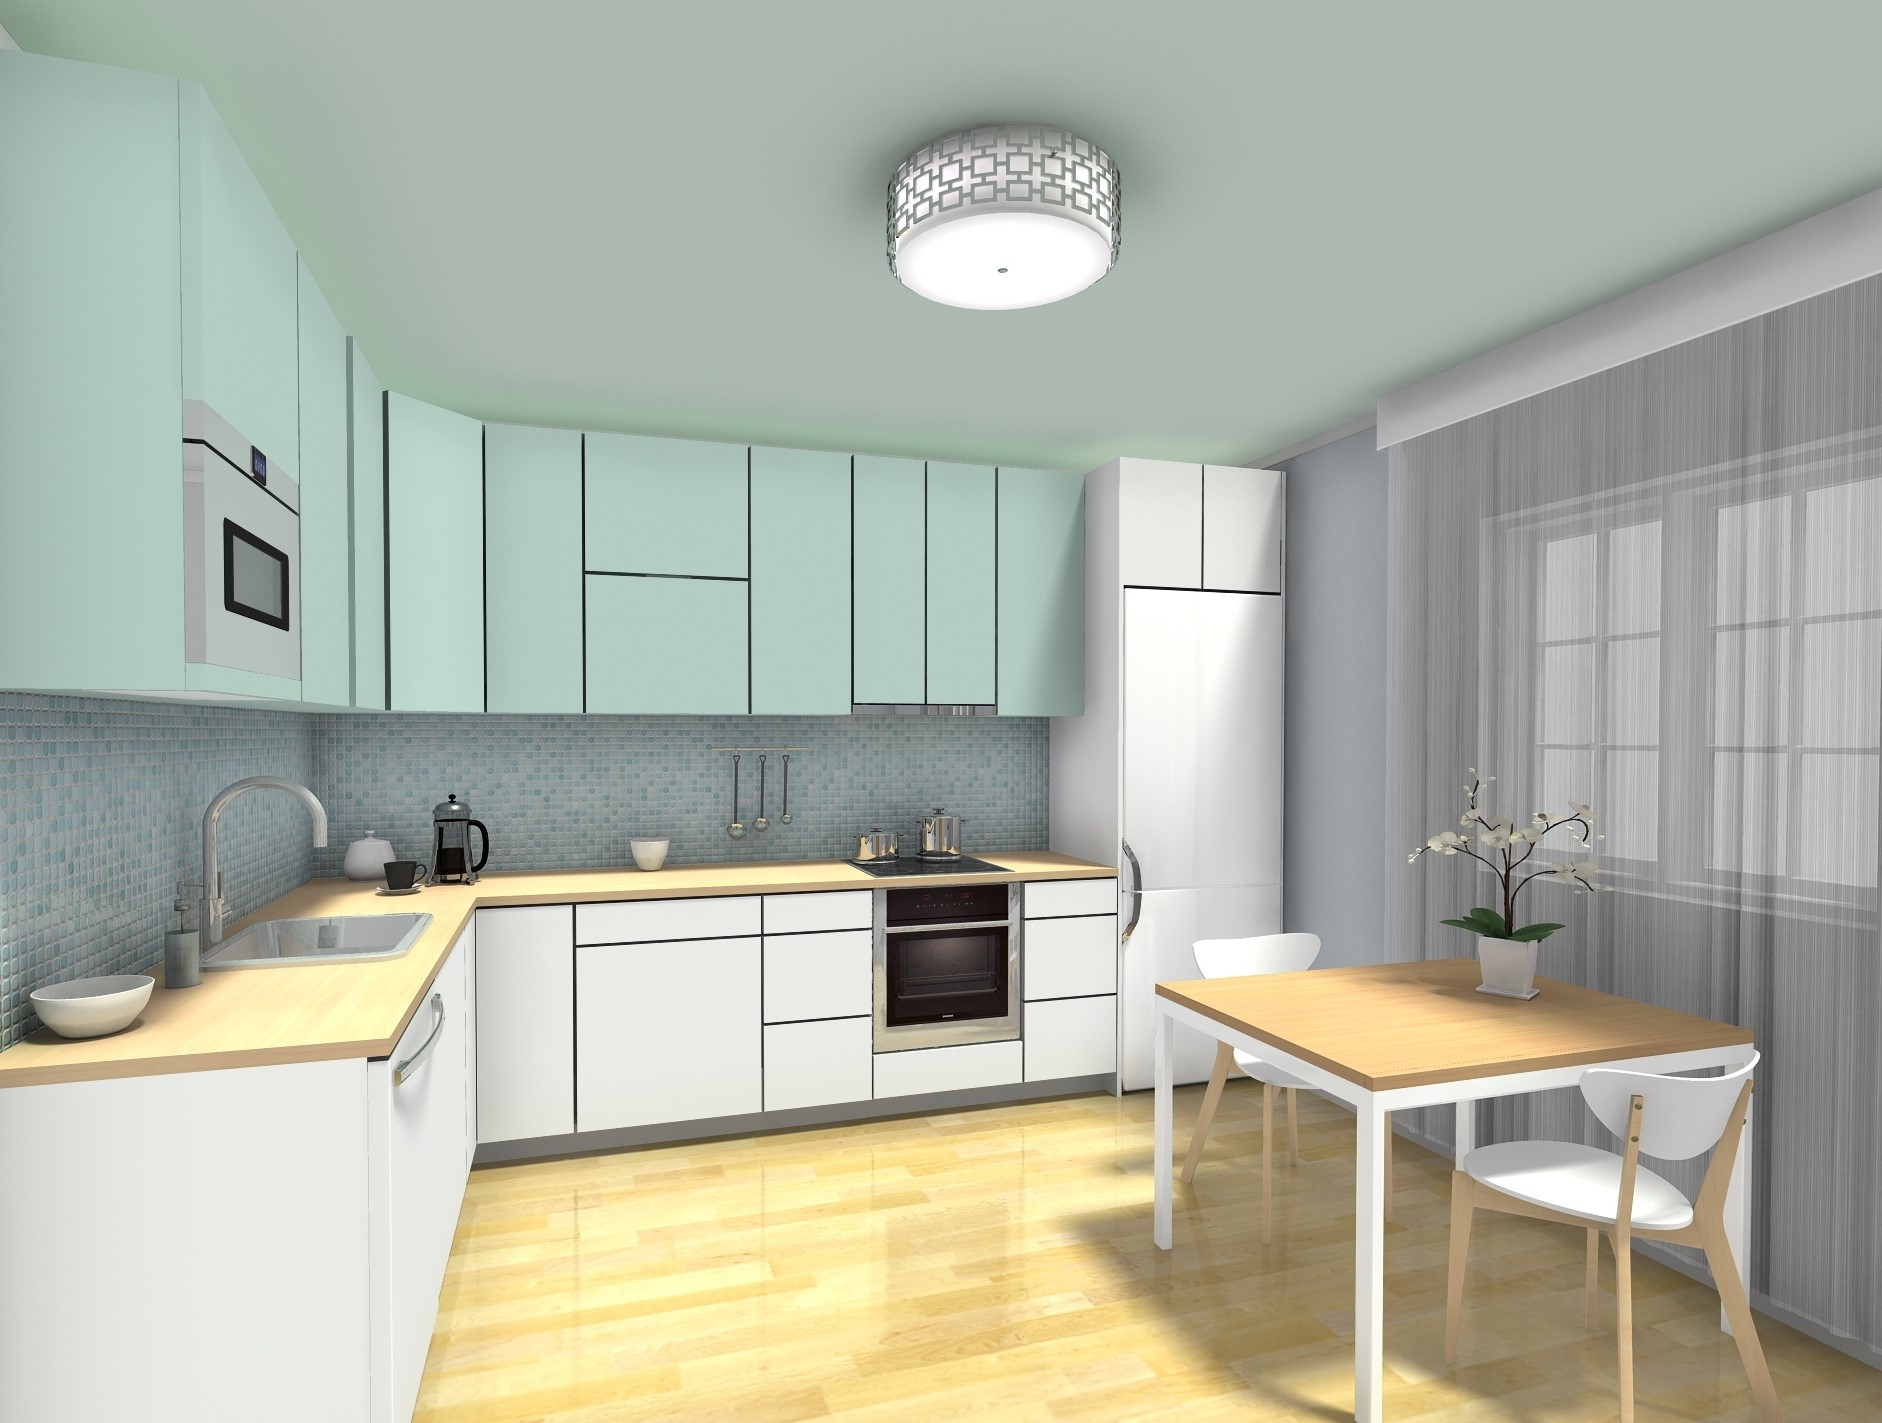 kitchen03.jpg